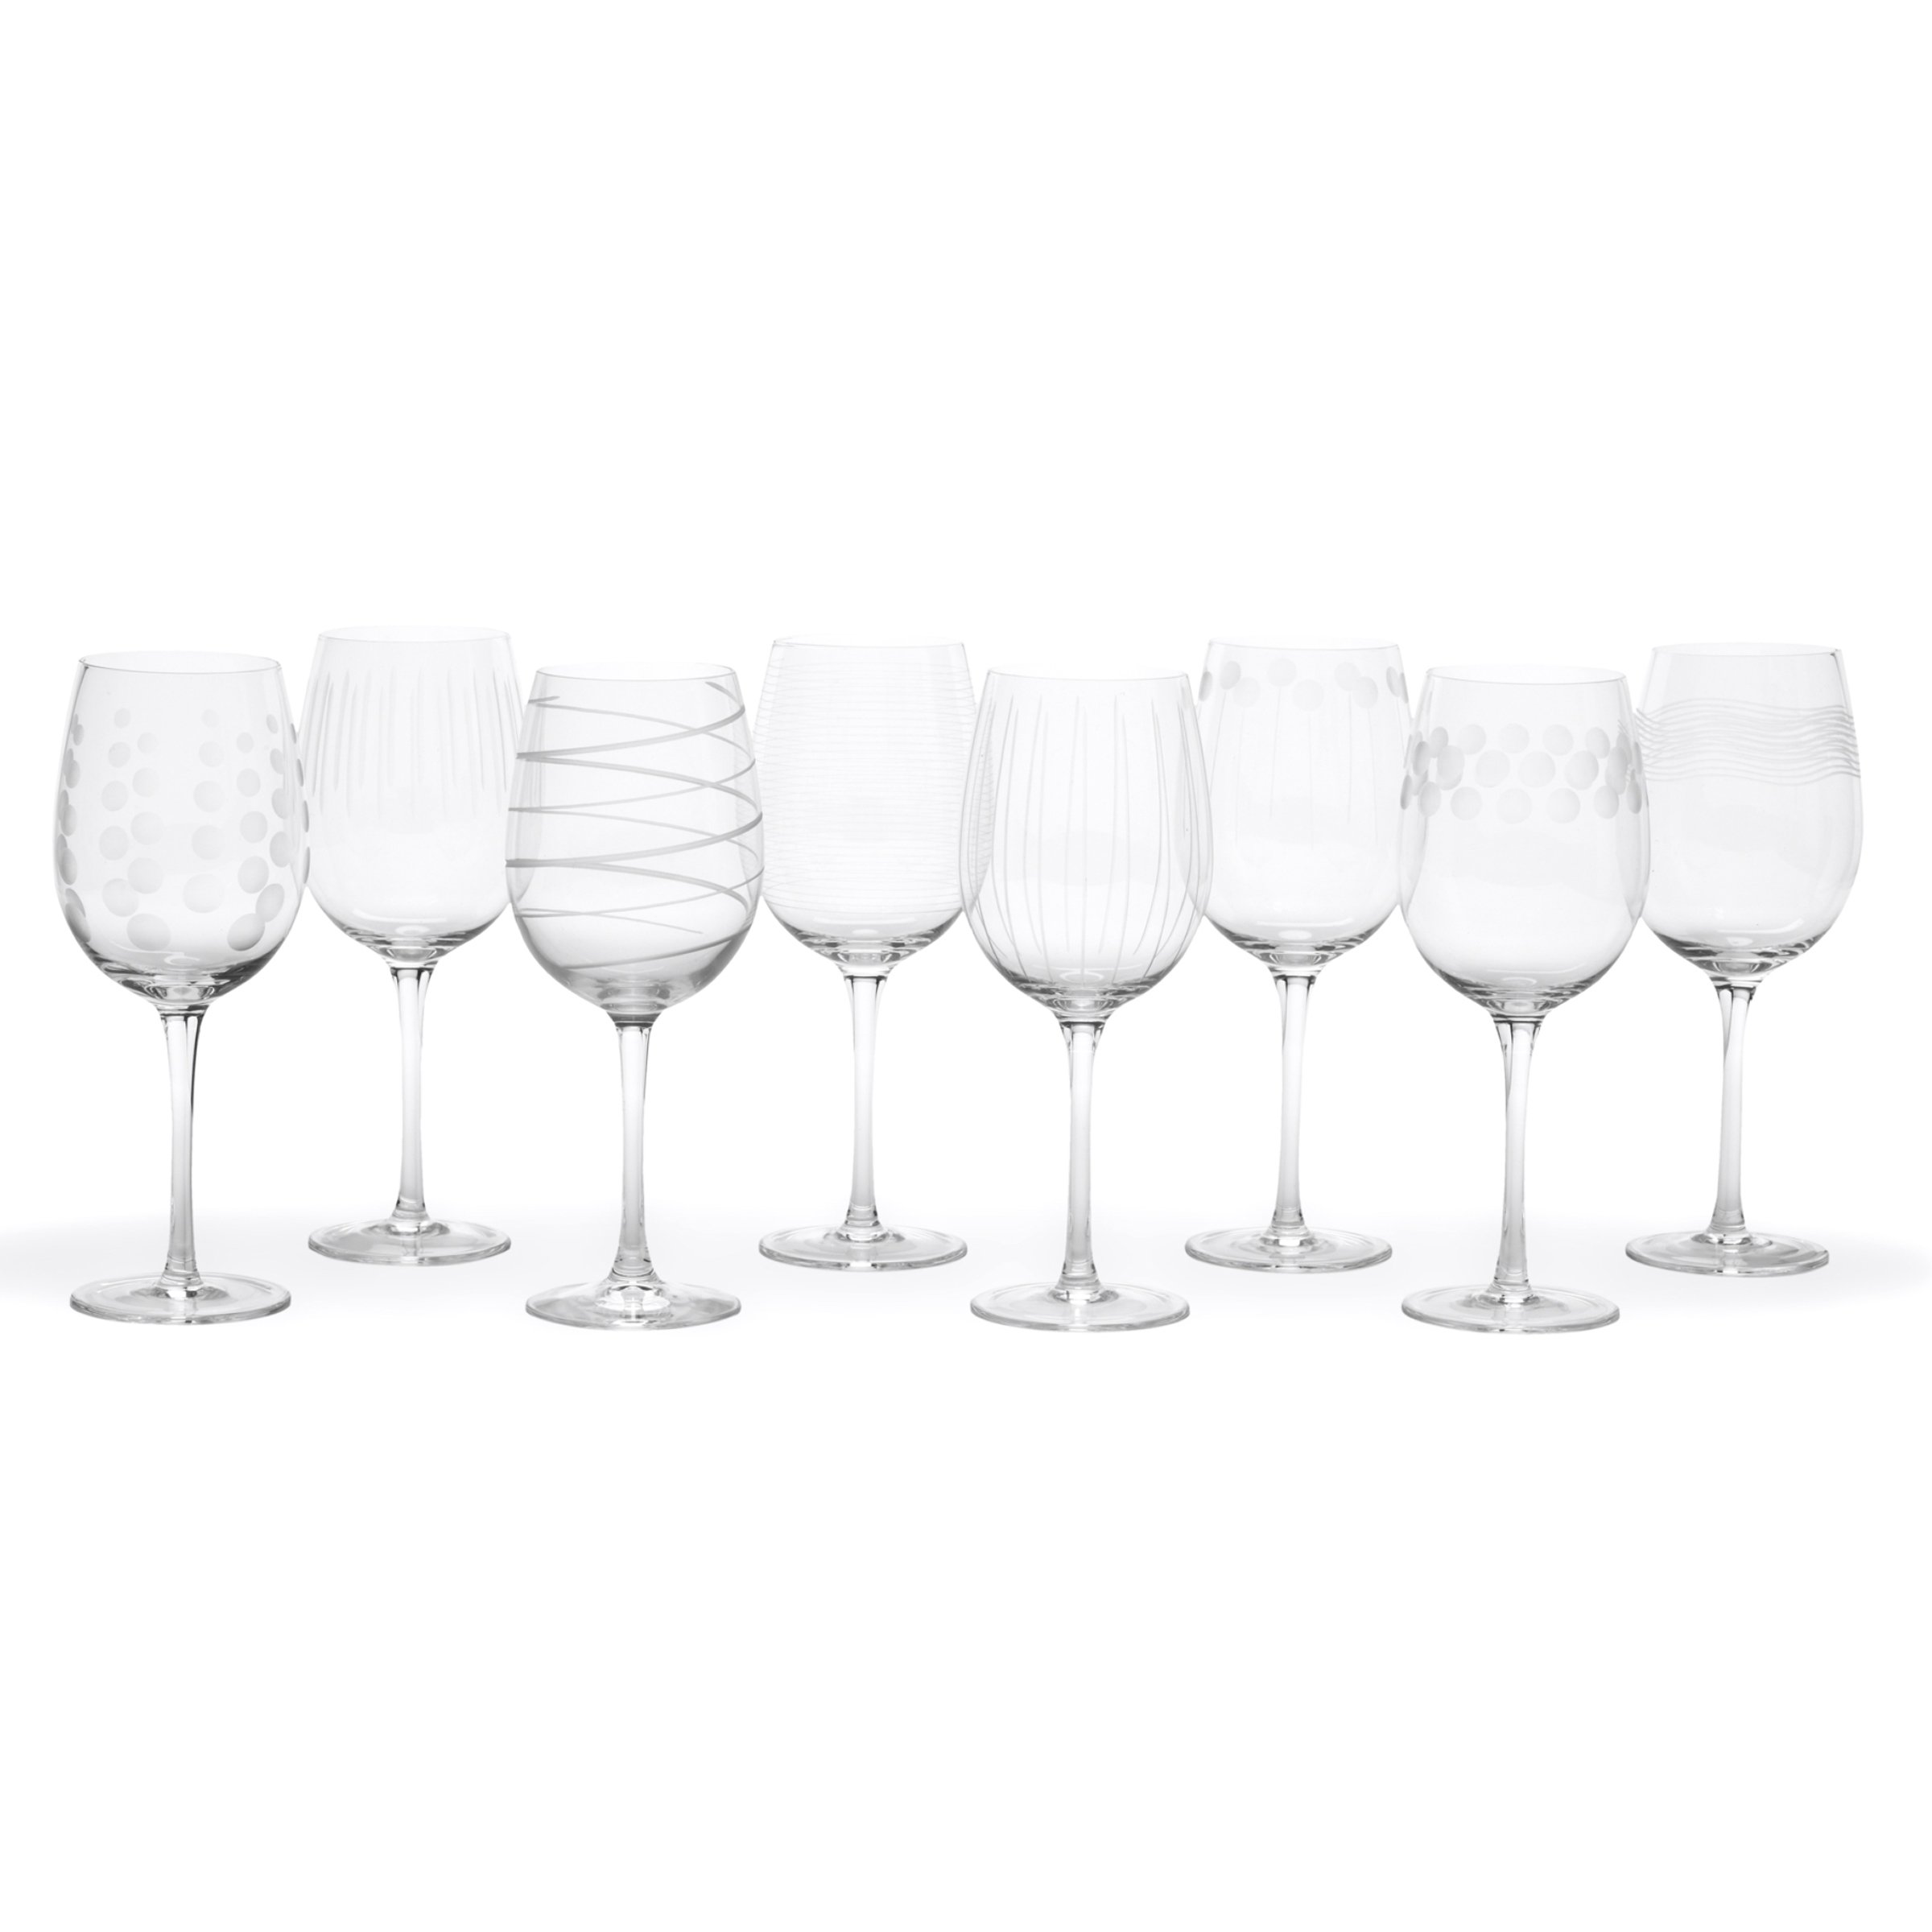 Mikasa Cheers White Wine Glasses, 16-Ounce, Set of 8 by Mikasa